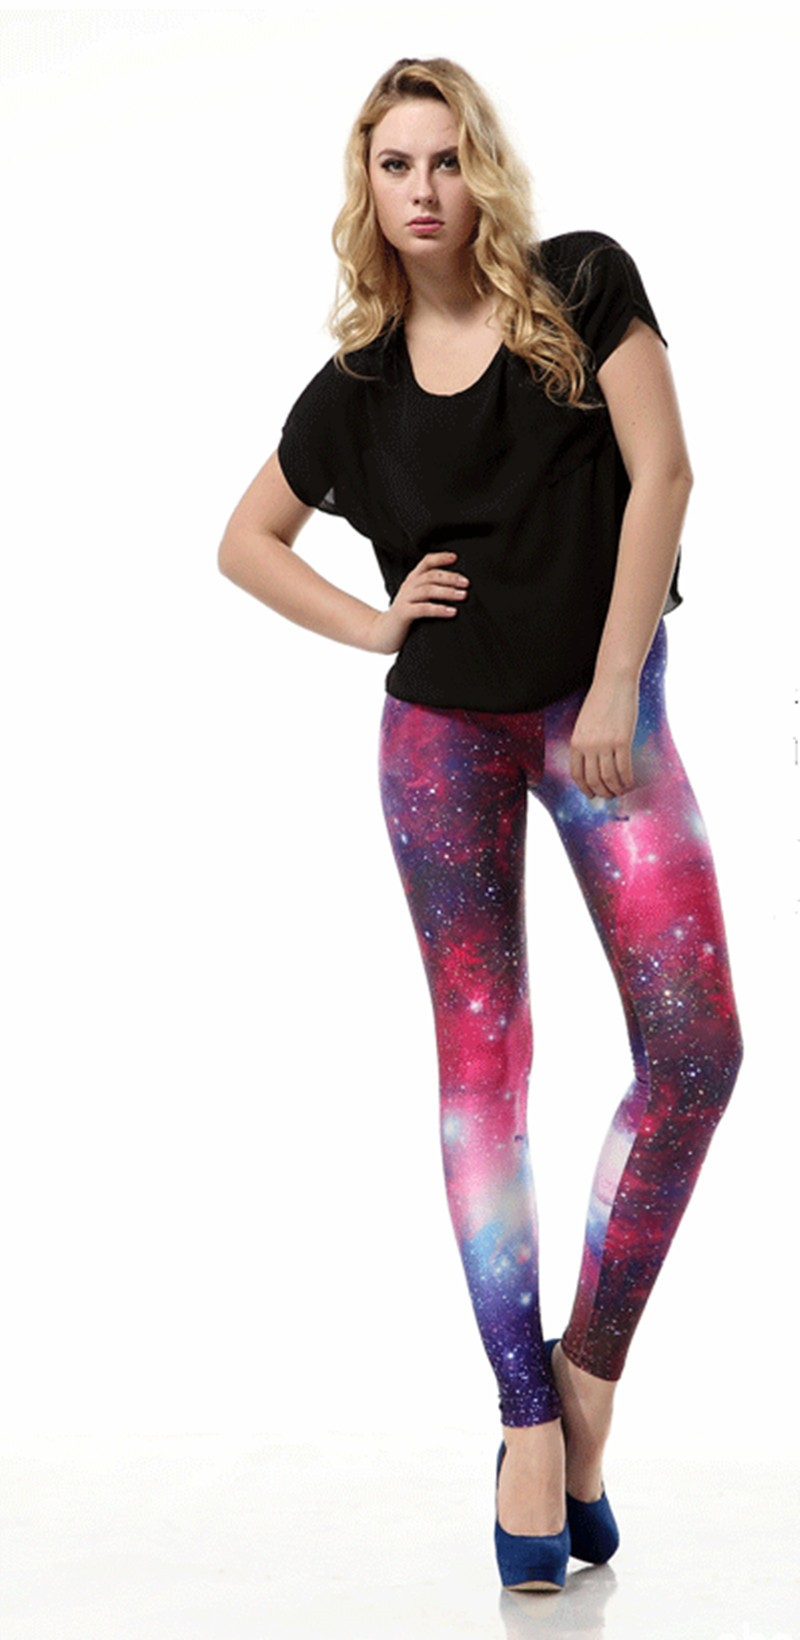 New Ladies High Elastic Big Yards Fashion Women Leggings Hot Galaxy Star Purple Slim Pencil Pants Fitness Casual Leggings